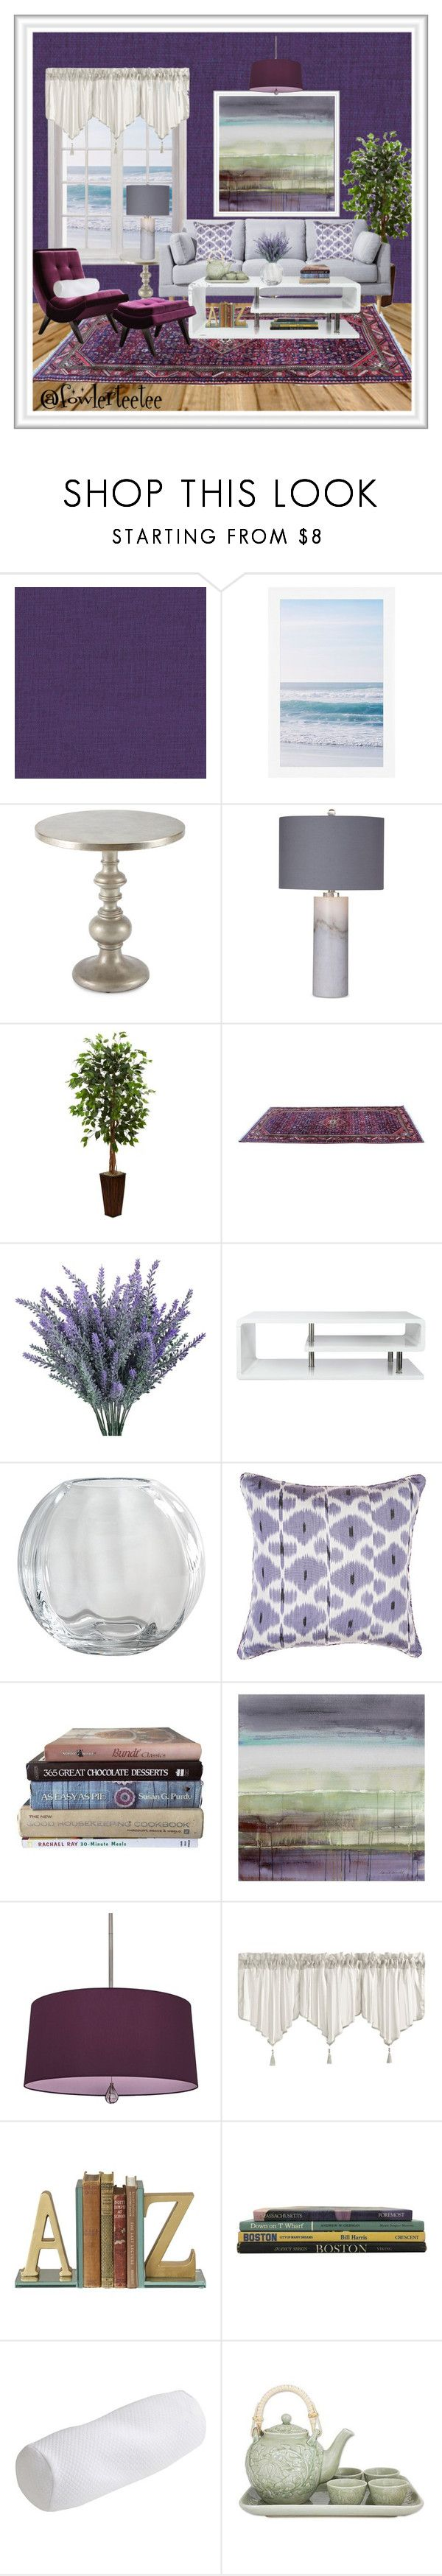 """Purple Perfection"" by fowlerteetee ❤ liked on Polyvore featuring interior, interiors, interior design, home, home decor, interior decorating, Élitis, Pottery Barn, Hooker Furniture and Basset Mirror Company"